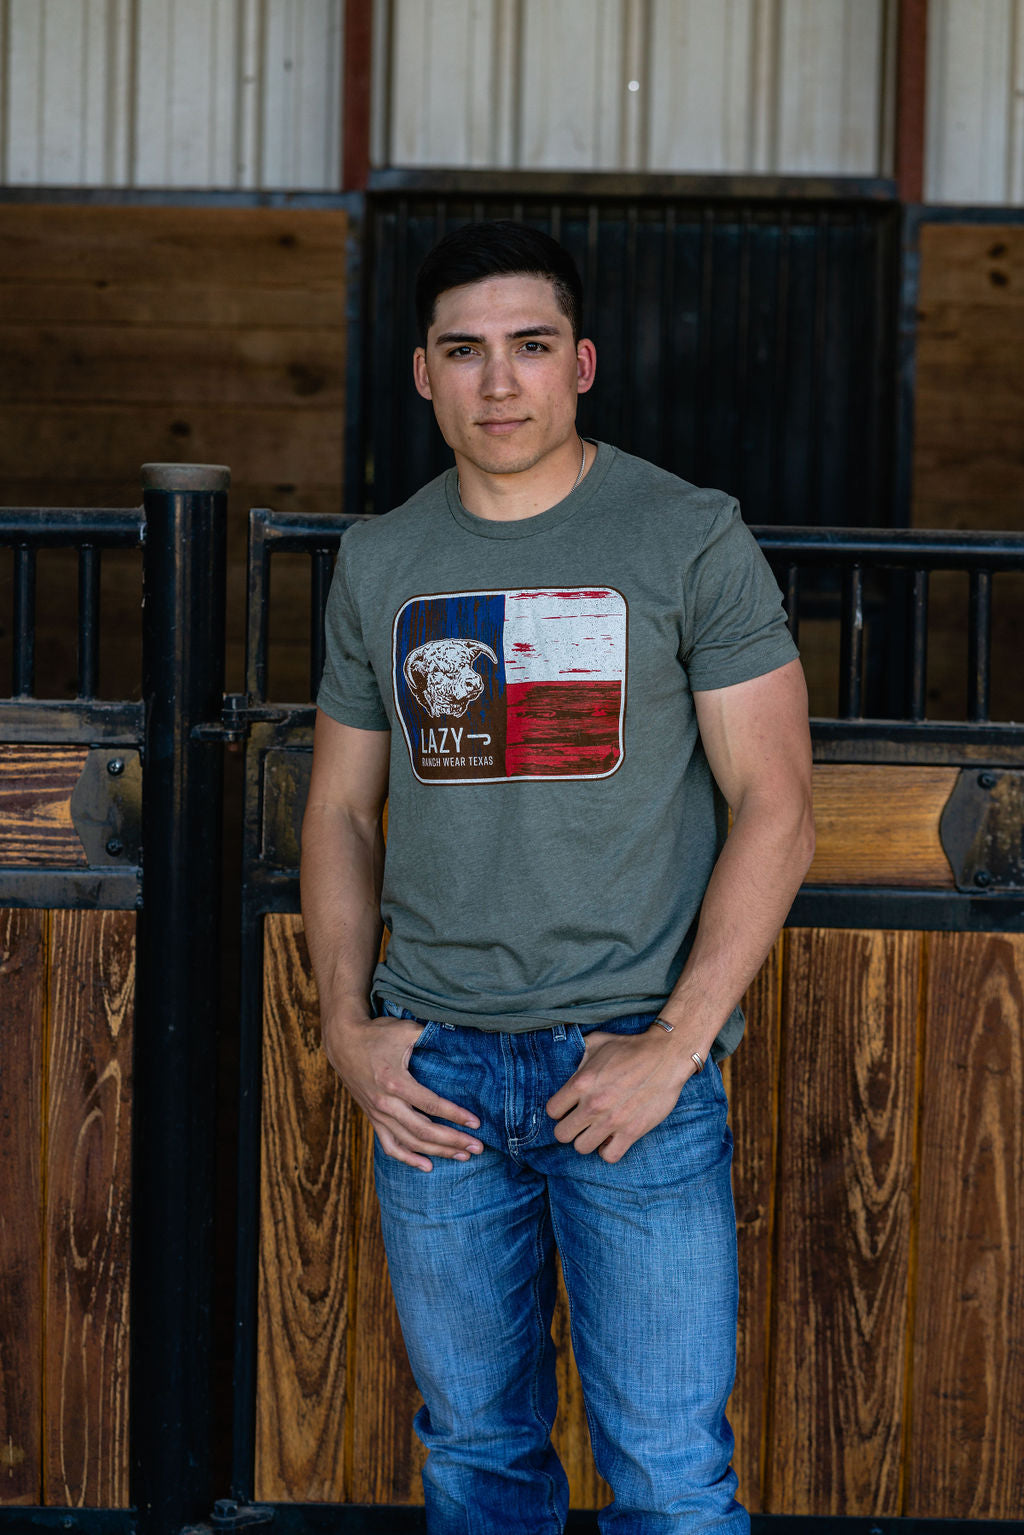 Lazy J Ranch Wear Hereford Bull Texas Flag Short Sleeve T-Shirt - Heather Green